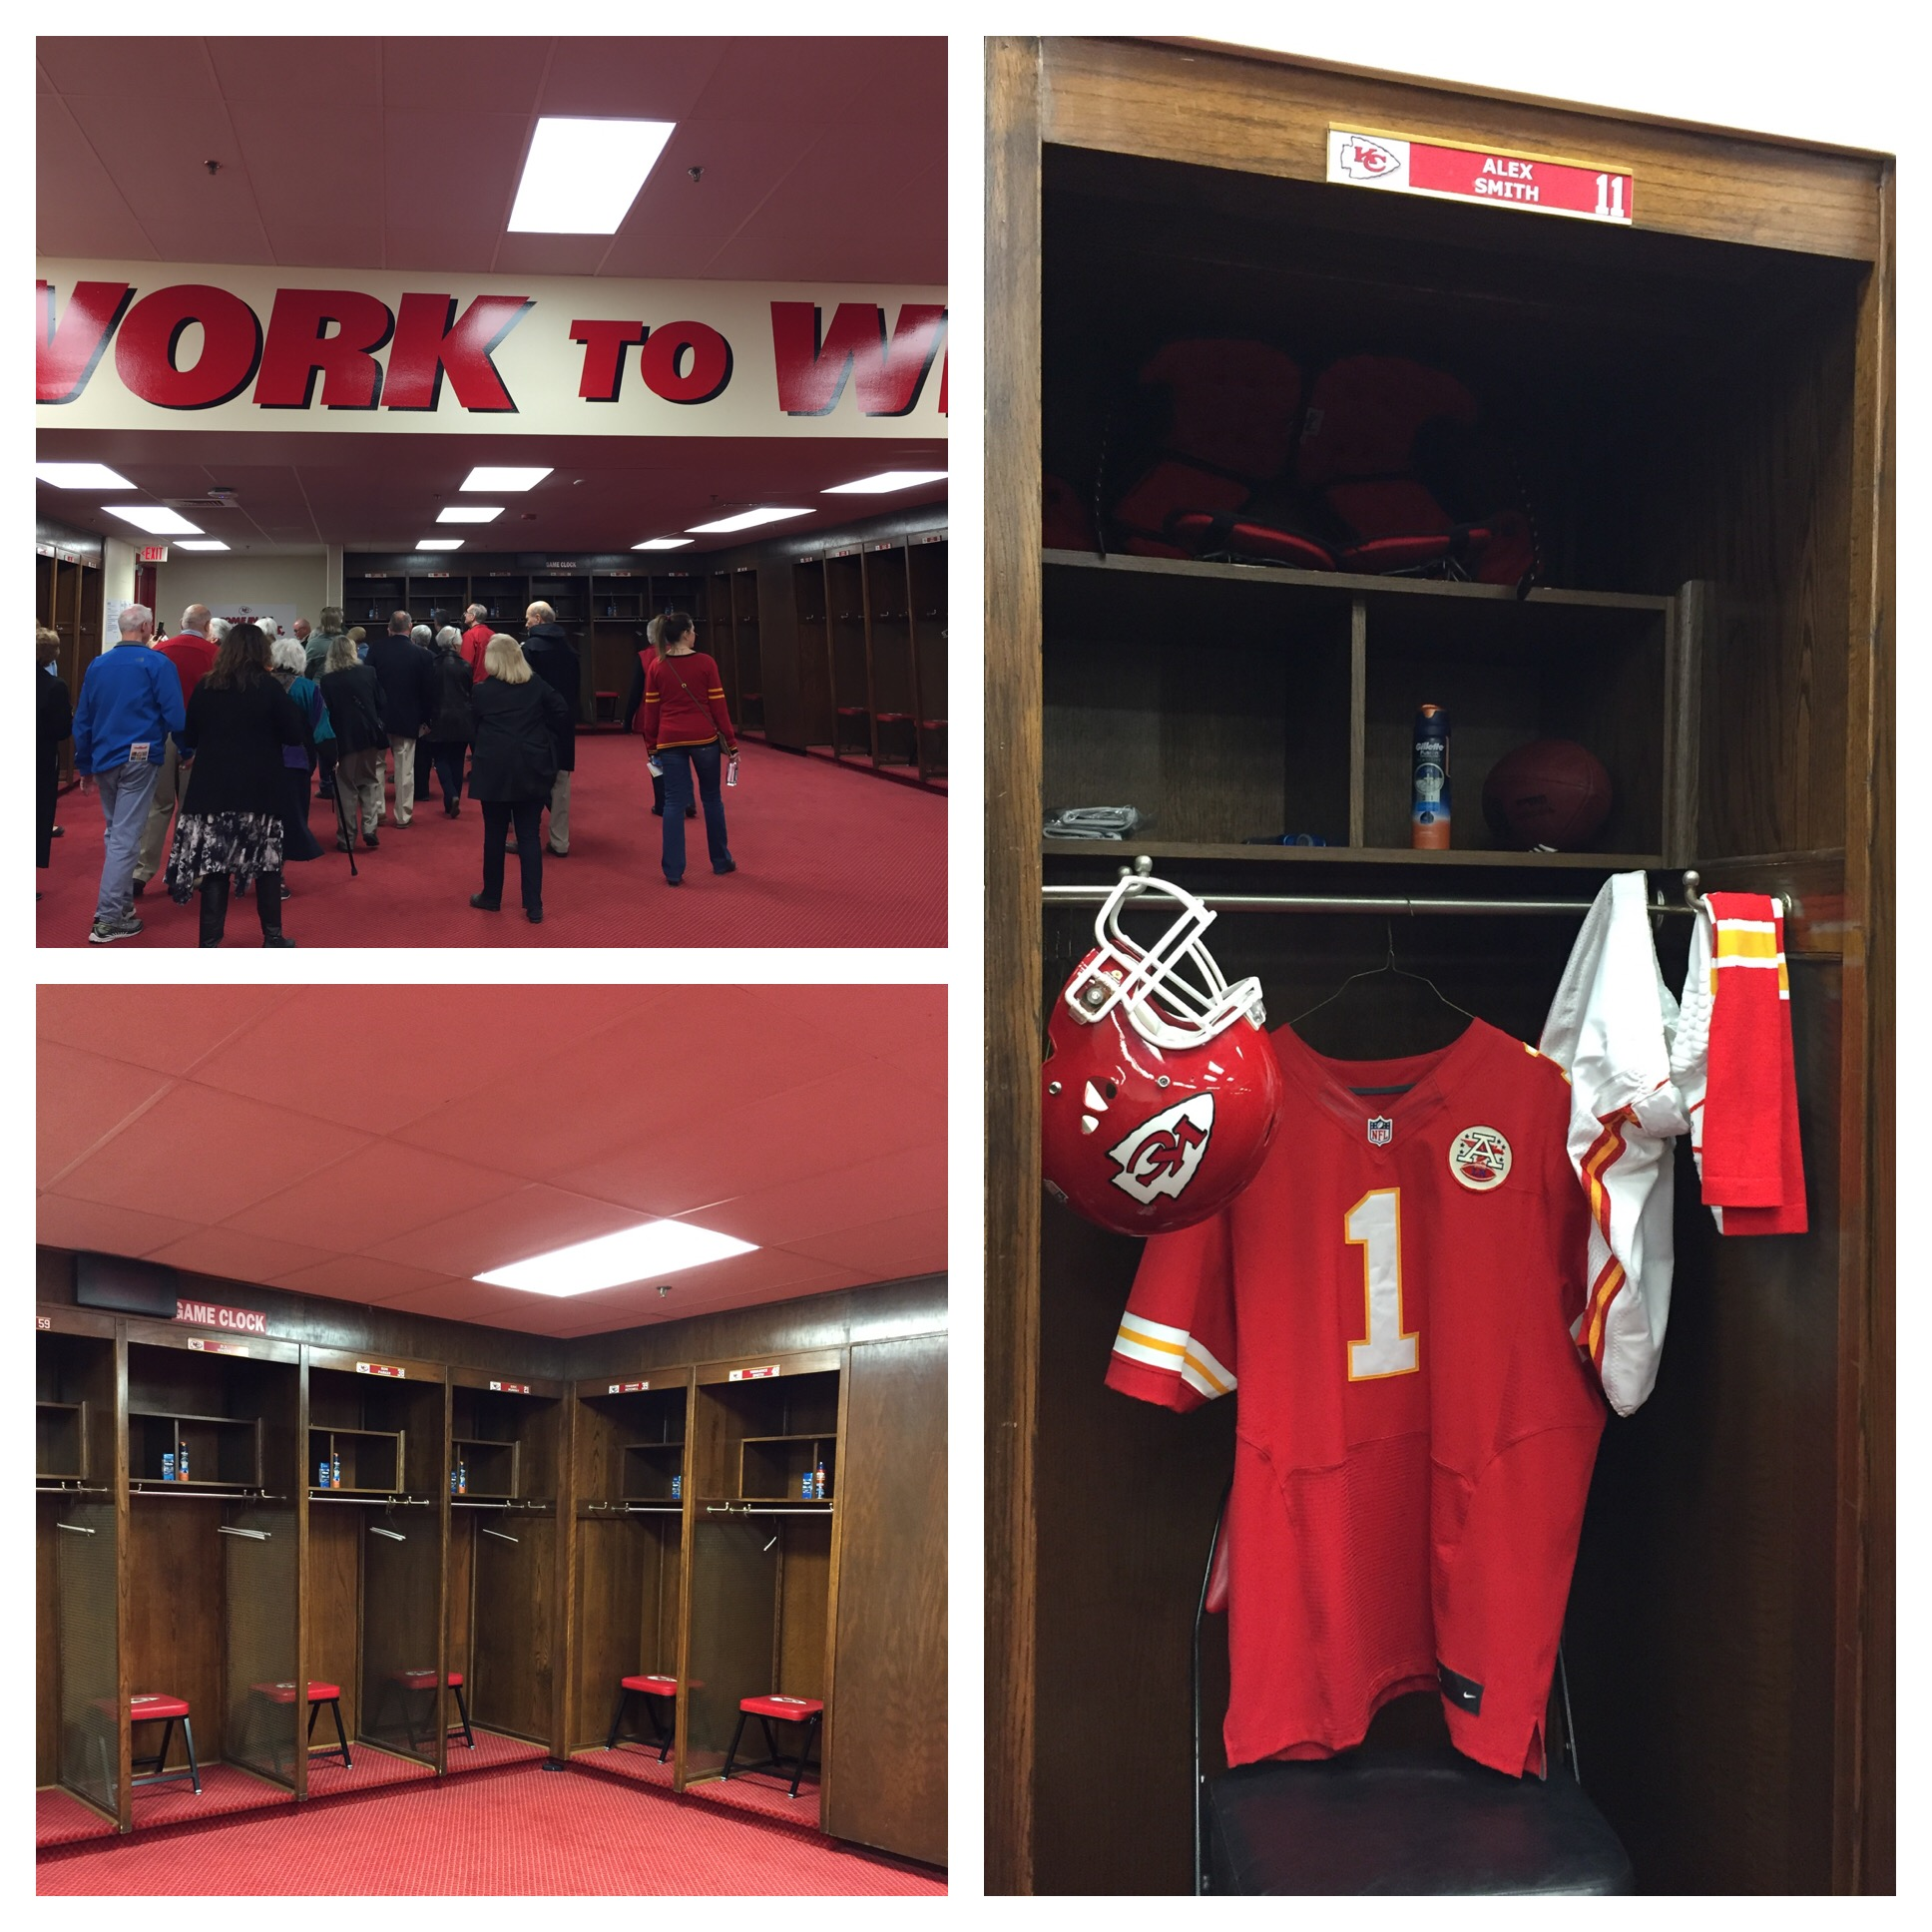 The locker room was not super impressive and looked like it hadn't been included in the renovation from 2010 - but the guide did say that since they have build a brand new practice facility the only time the players are ever in the locker room is the day of the game. Something tells me the locker room in the new facility is loaded with great amenities - and it was still cool to see.